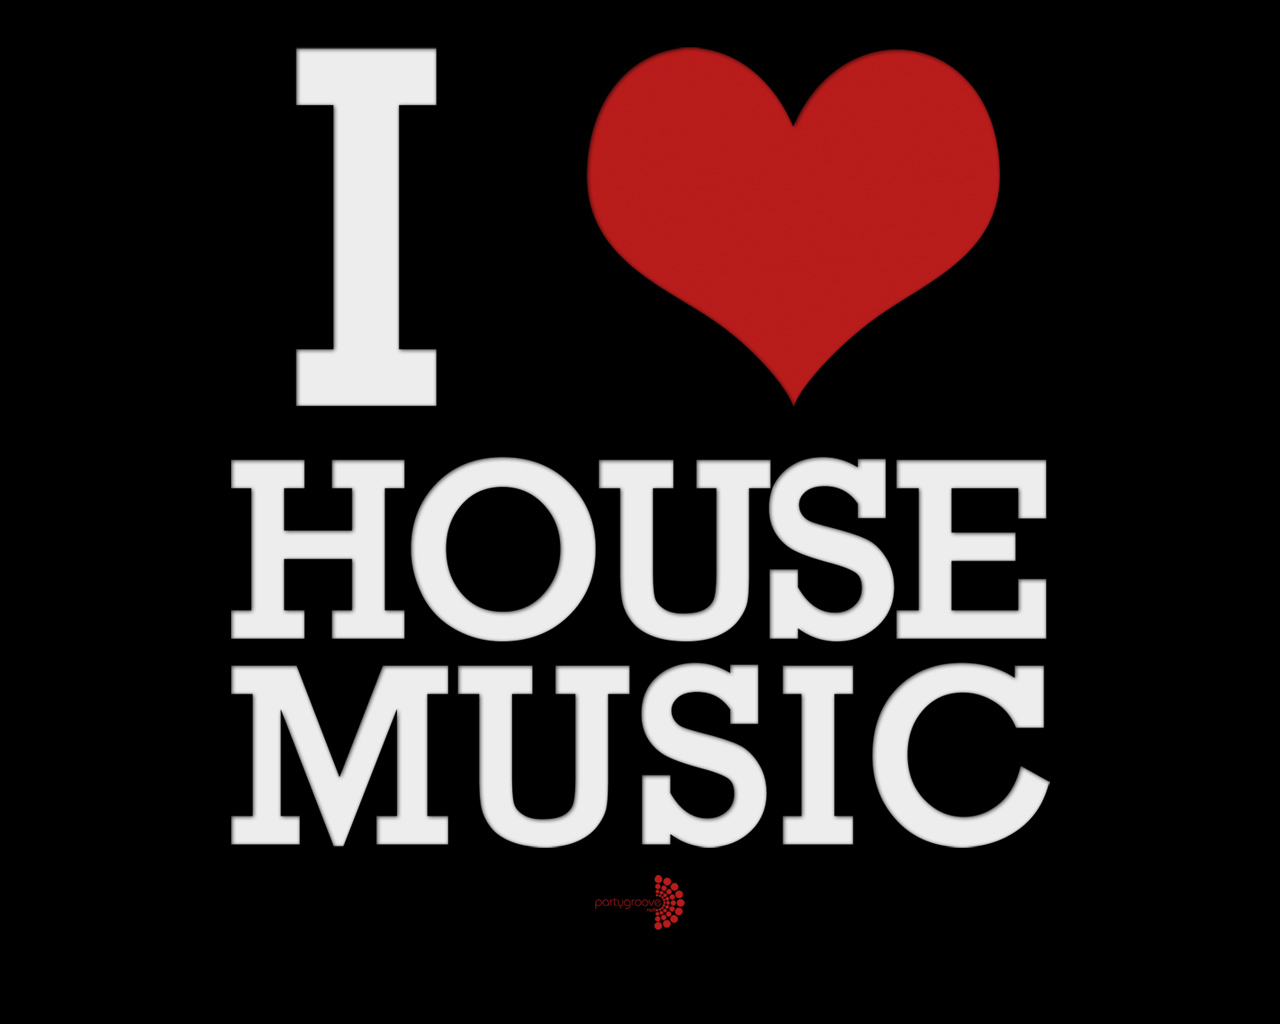 Chicago house music wallpapers wallpapersafari for Chicago house music